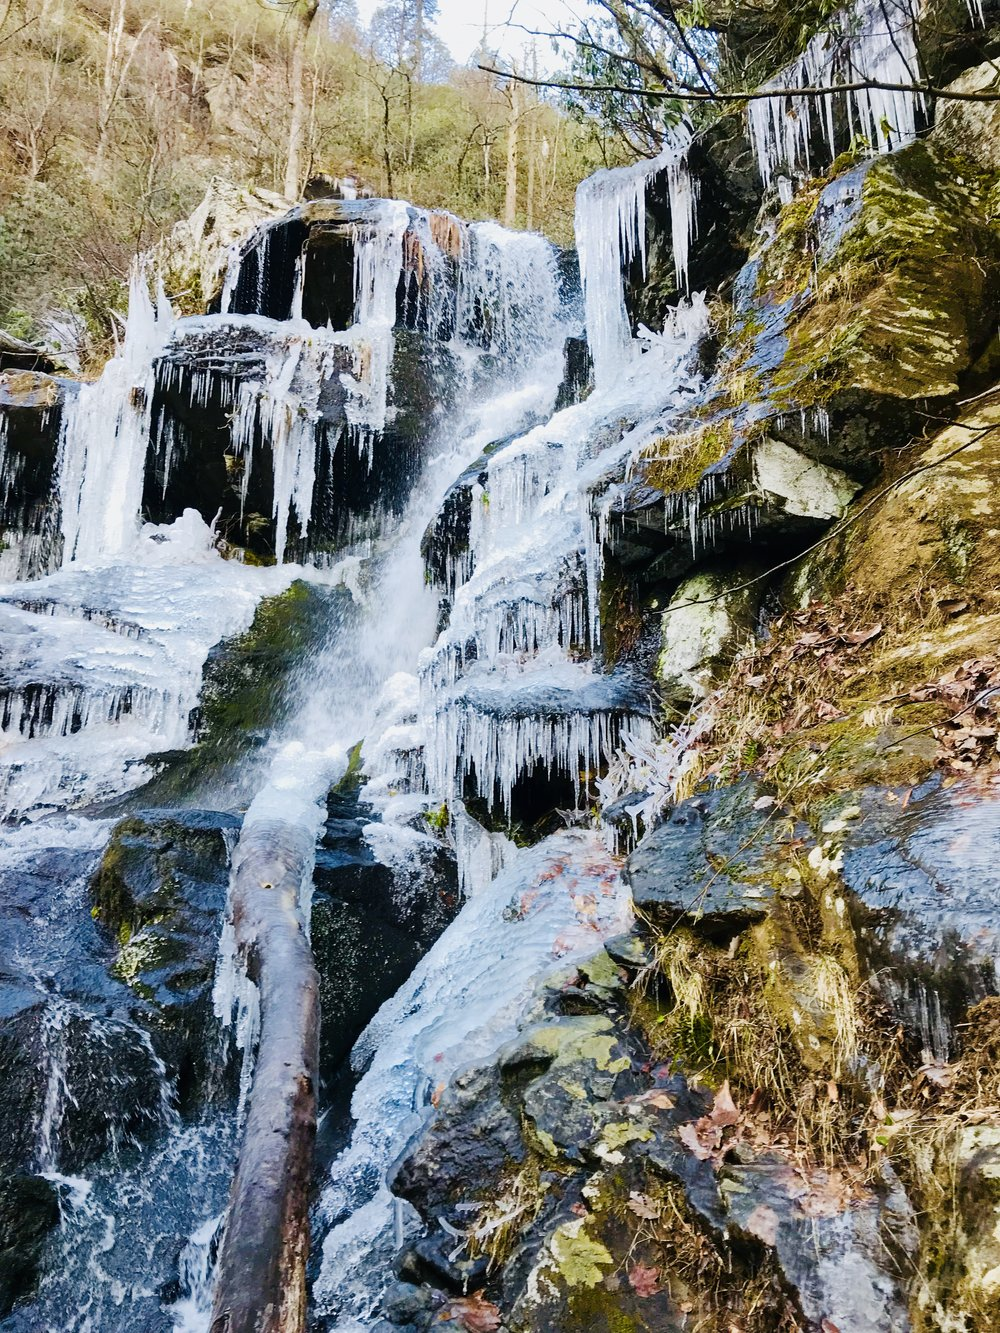 If you hike a little ways up the side of the falls on a frigid day in January, you can see some spectacular icicles.